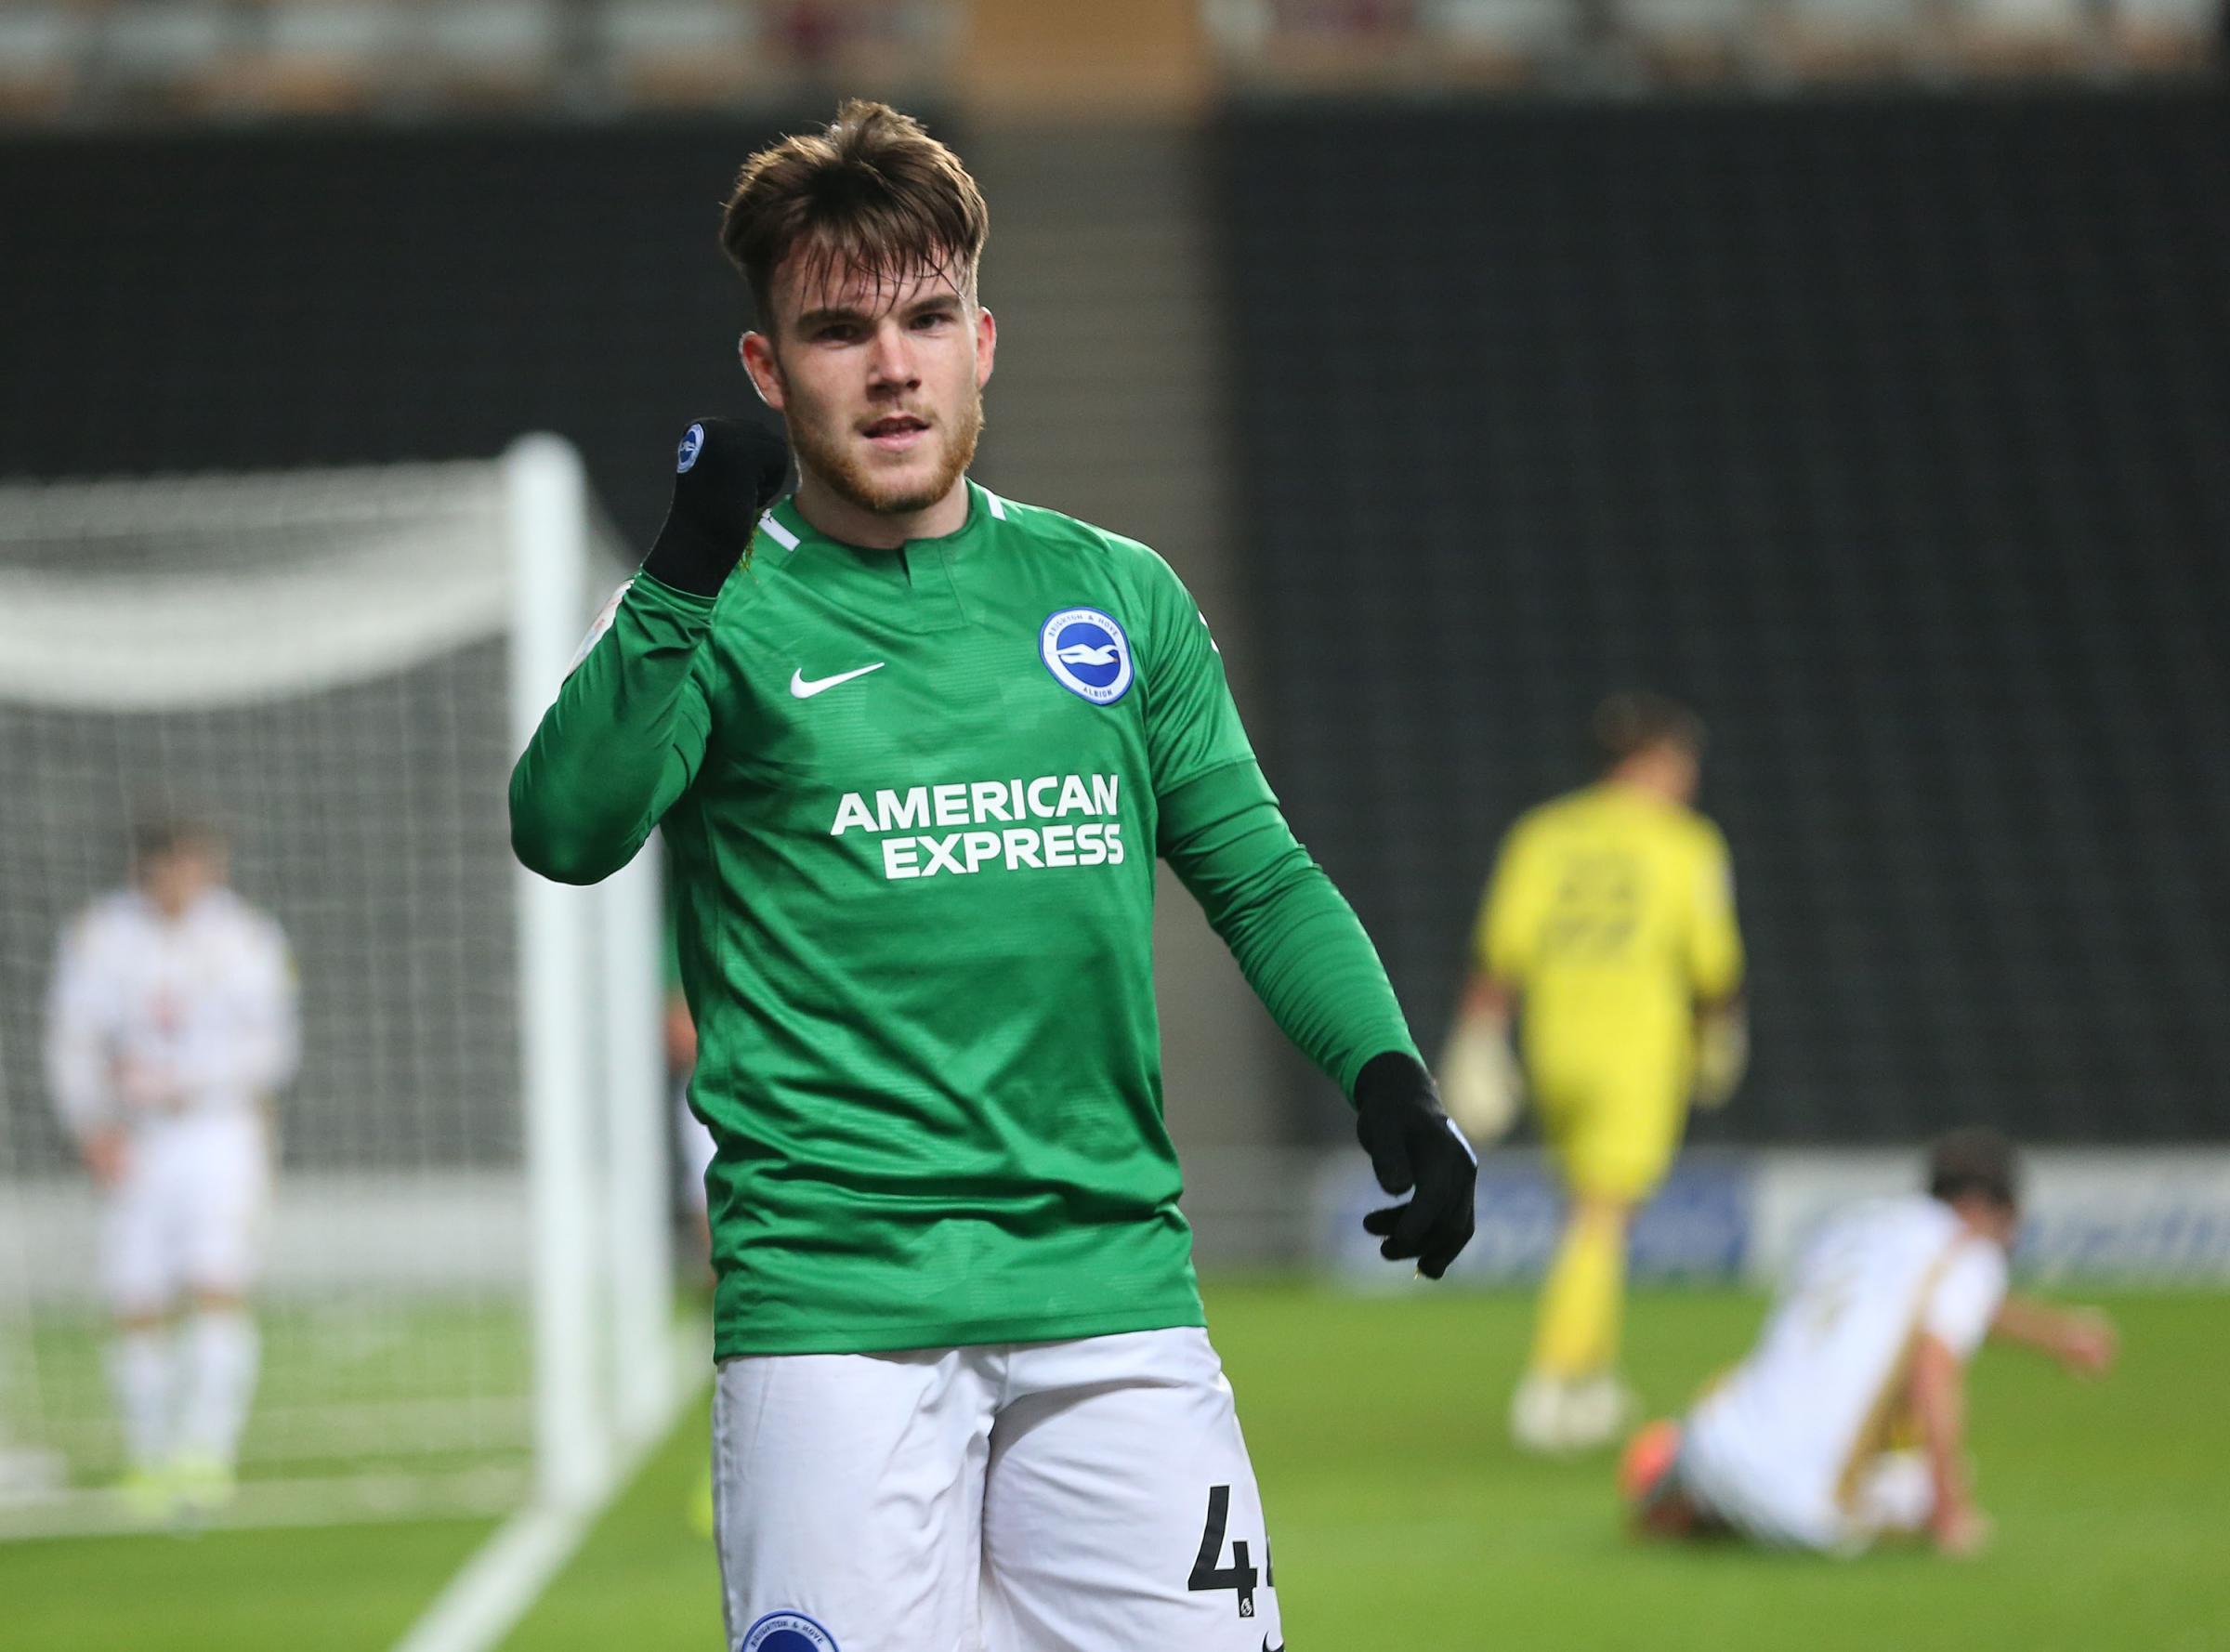 Connolly back in action for Albion youngsters